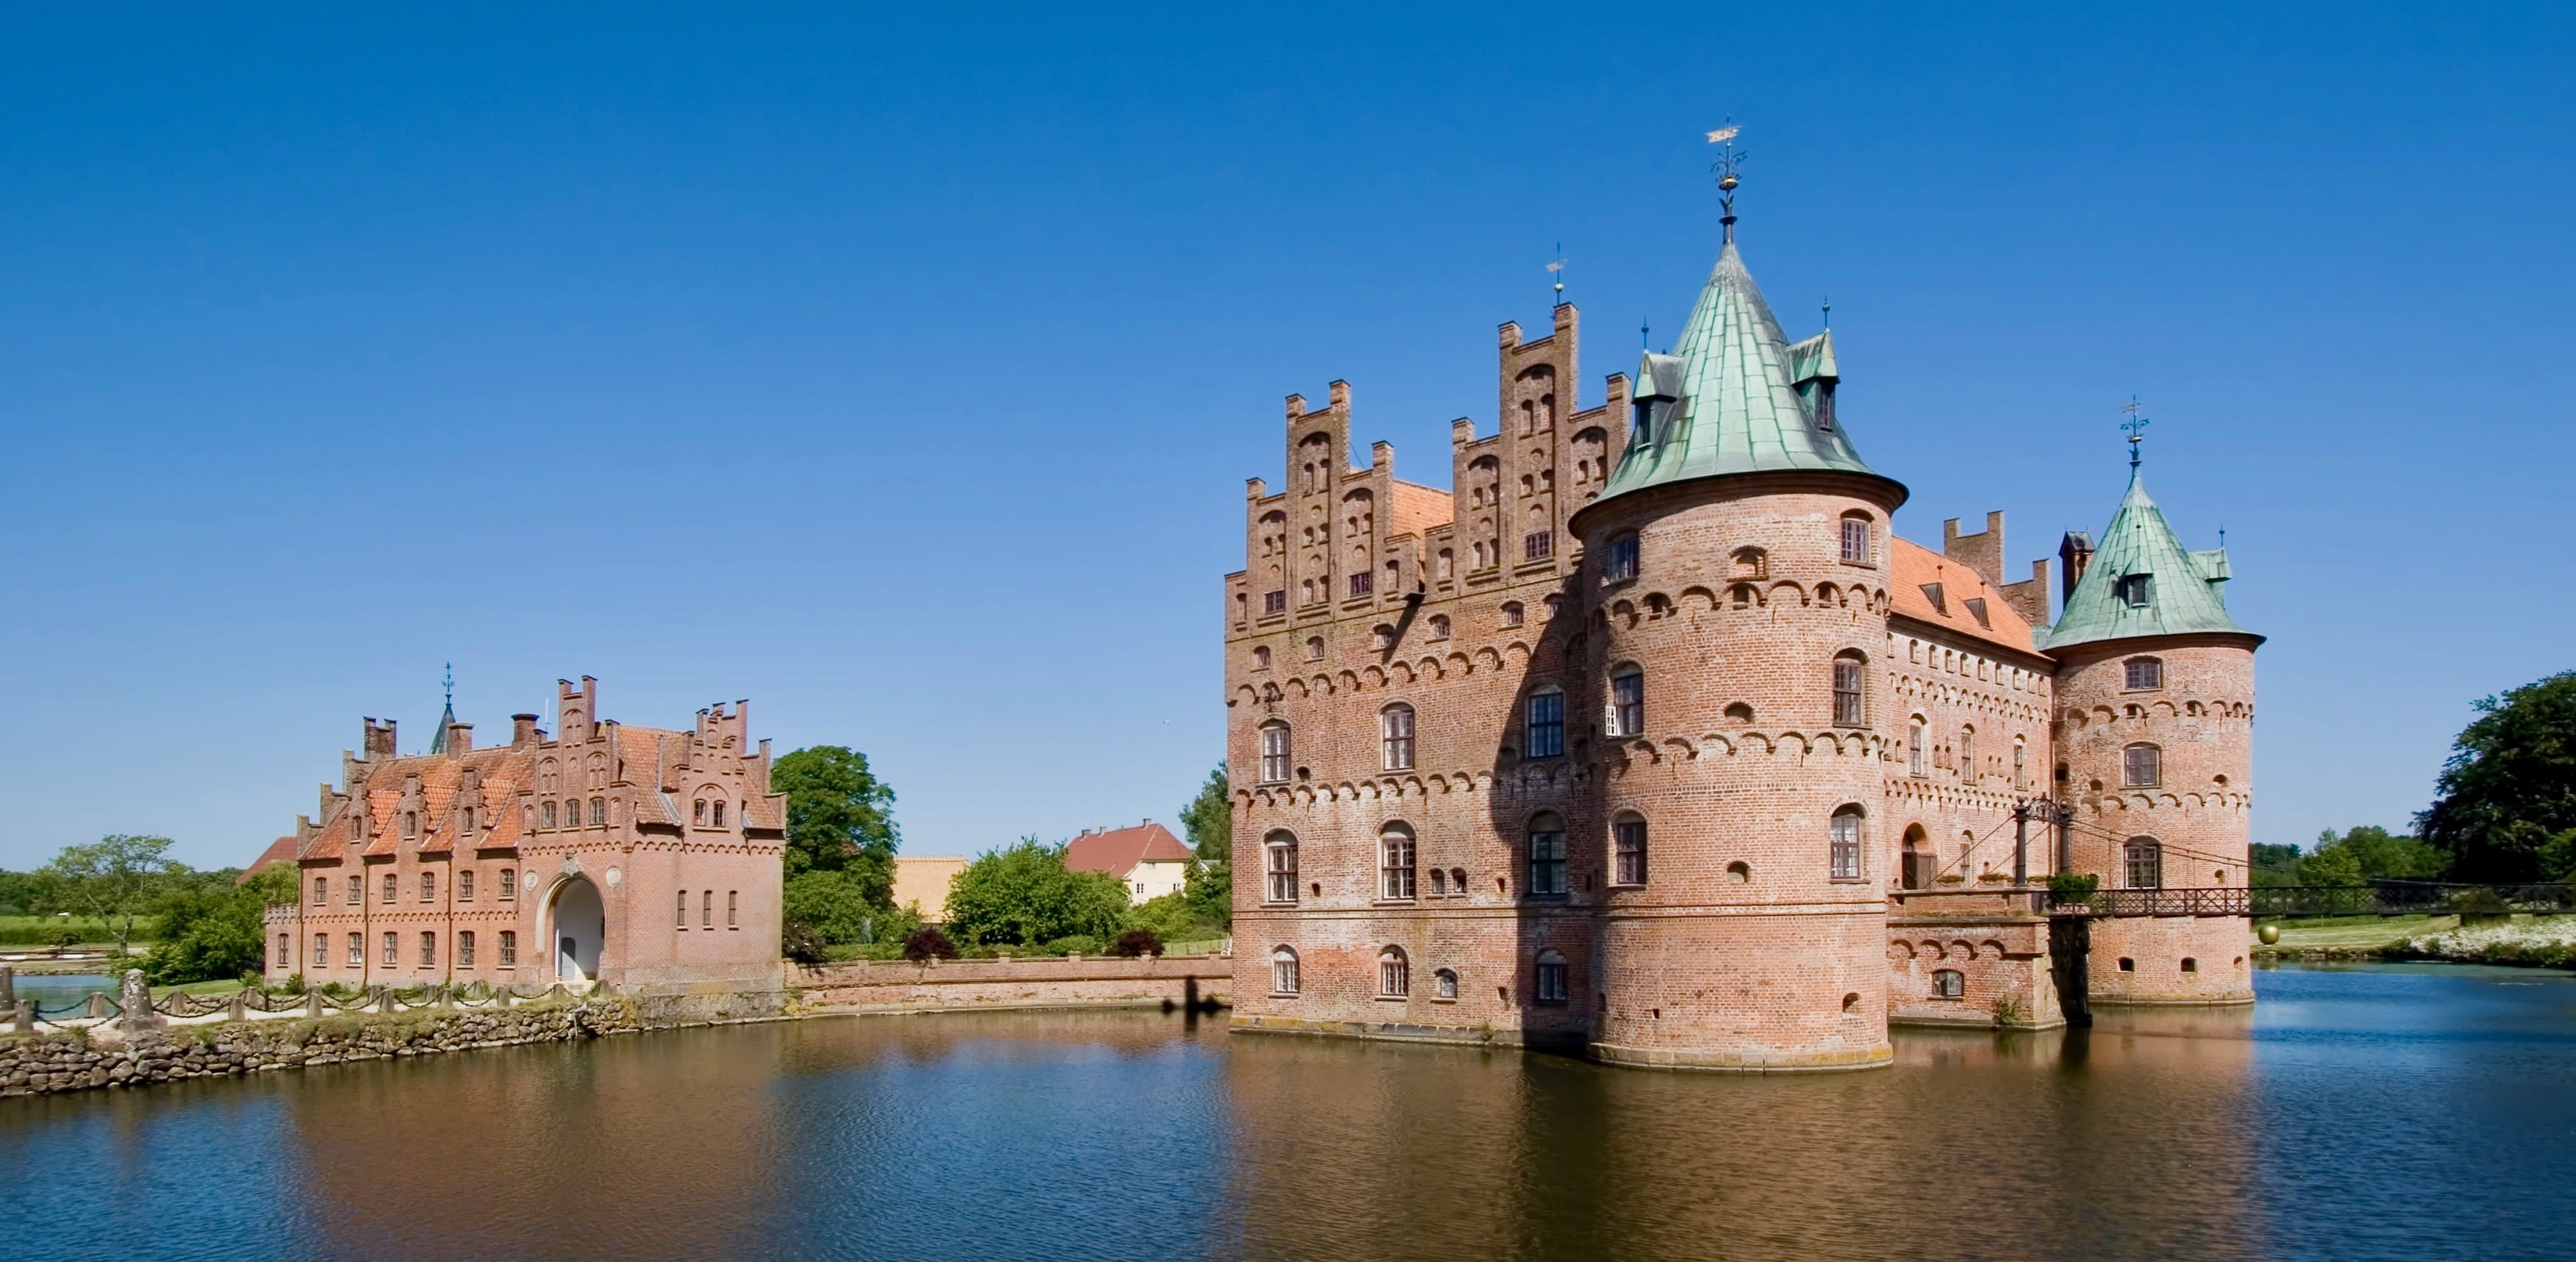 A castle with a moat.